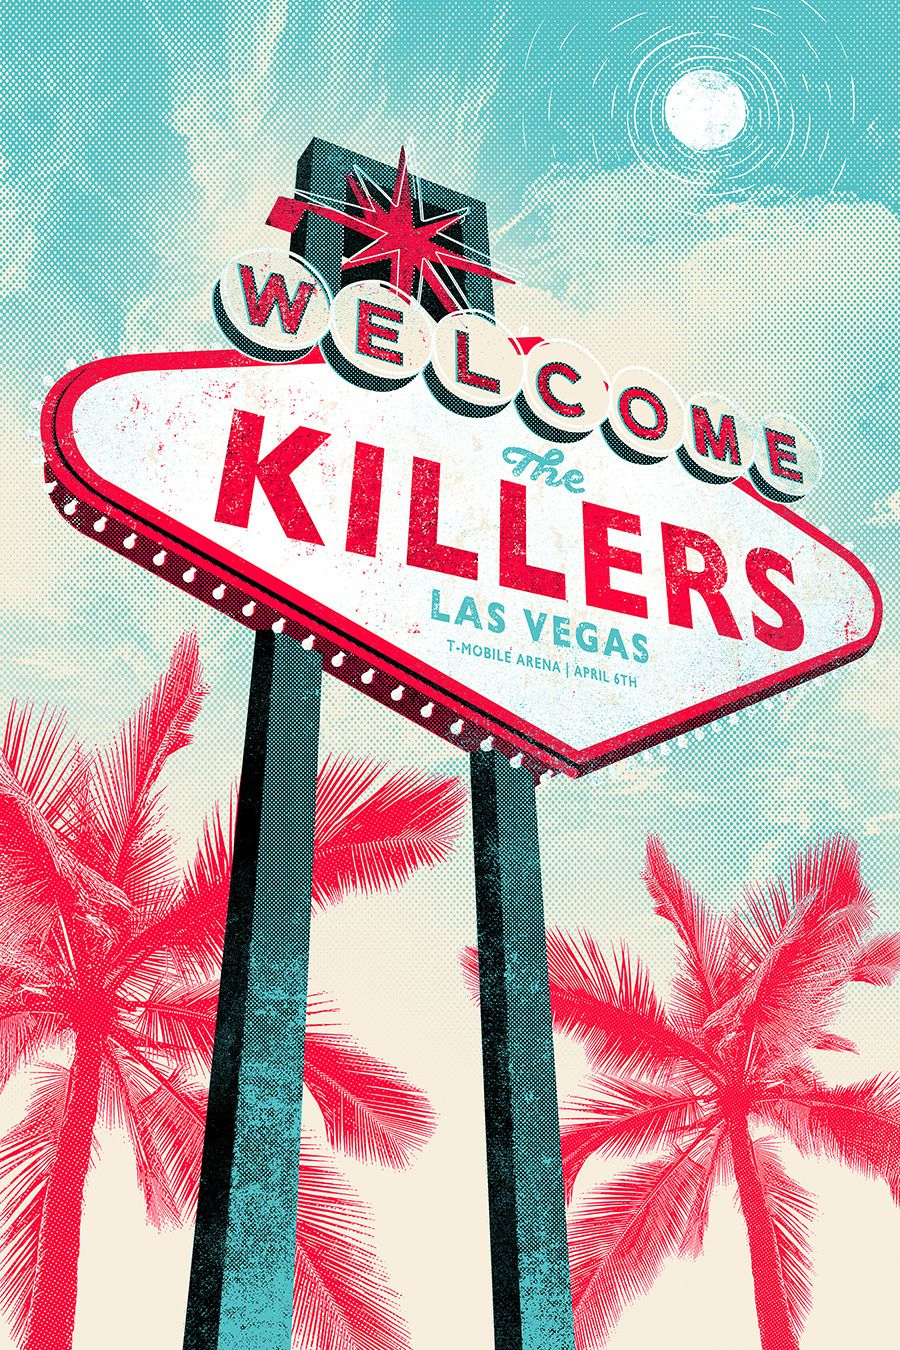 The Killers Tshirts Gigposters 2016 On Behance Rock